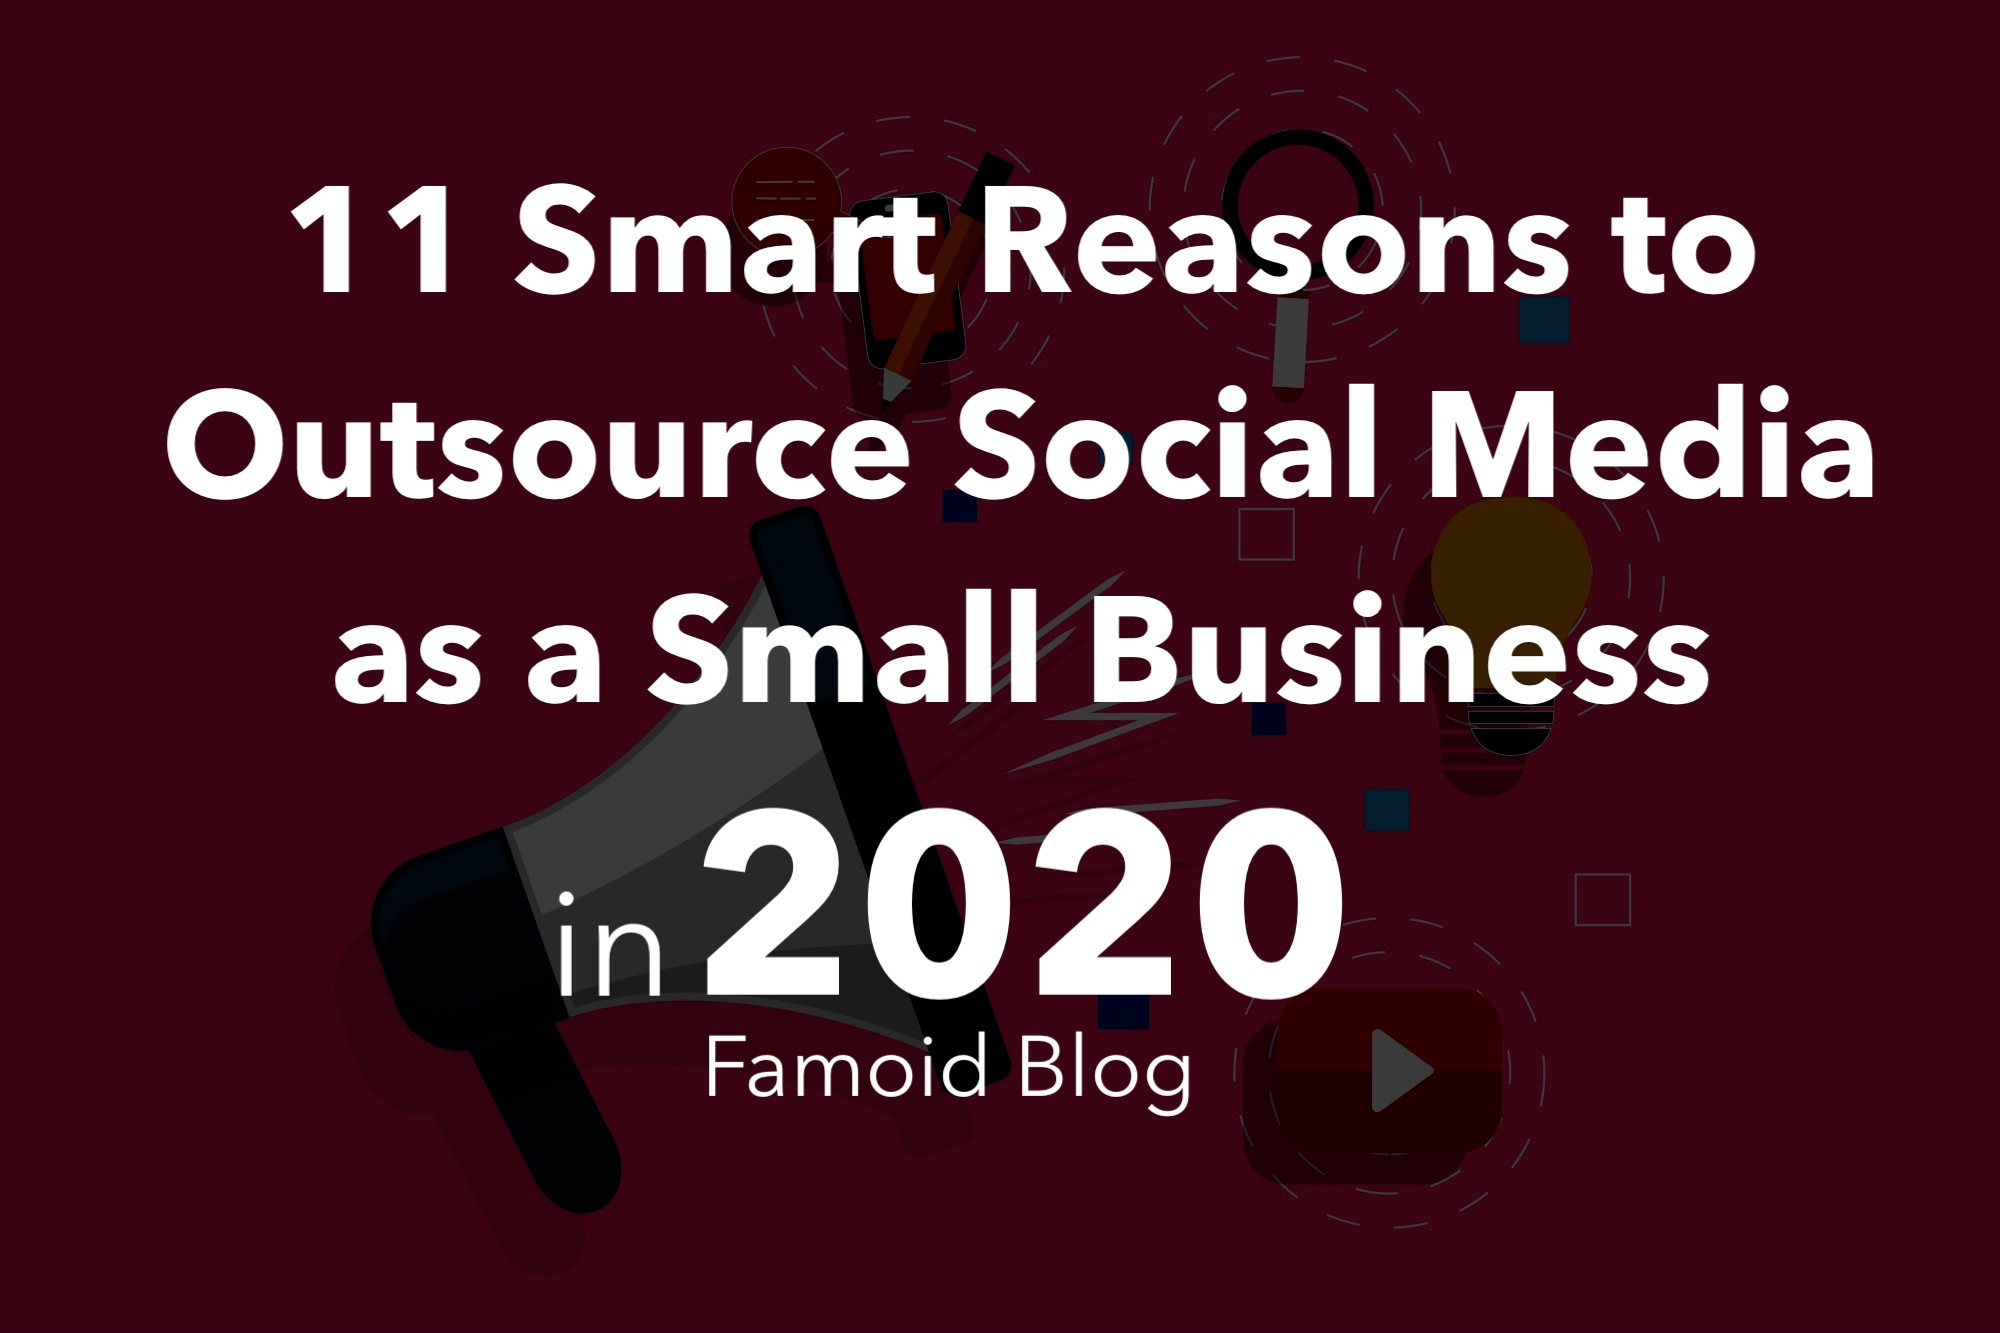 11 Smart Reasons to Outsource Social Media as a Small Business